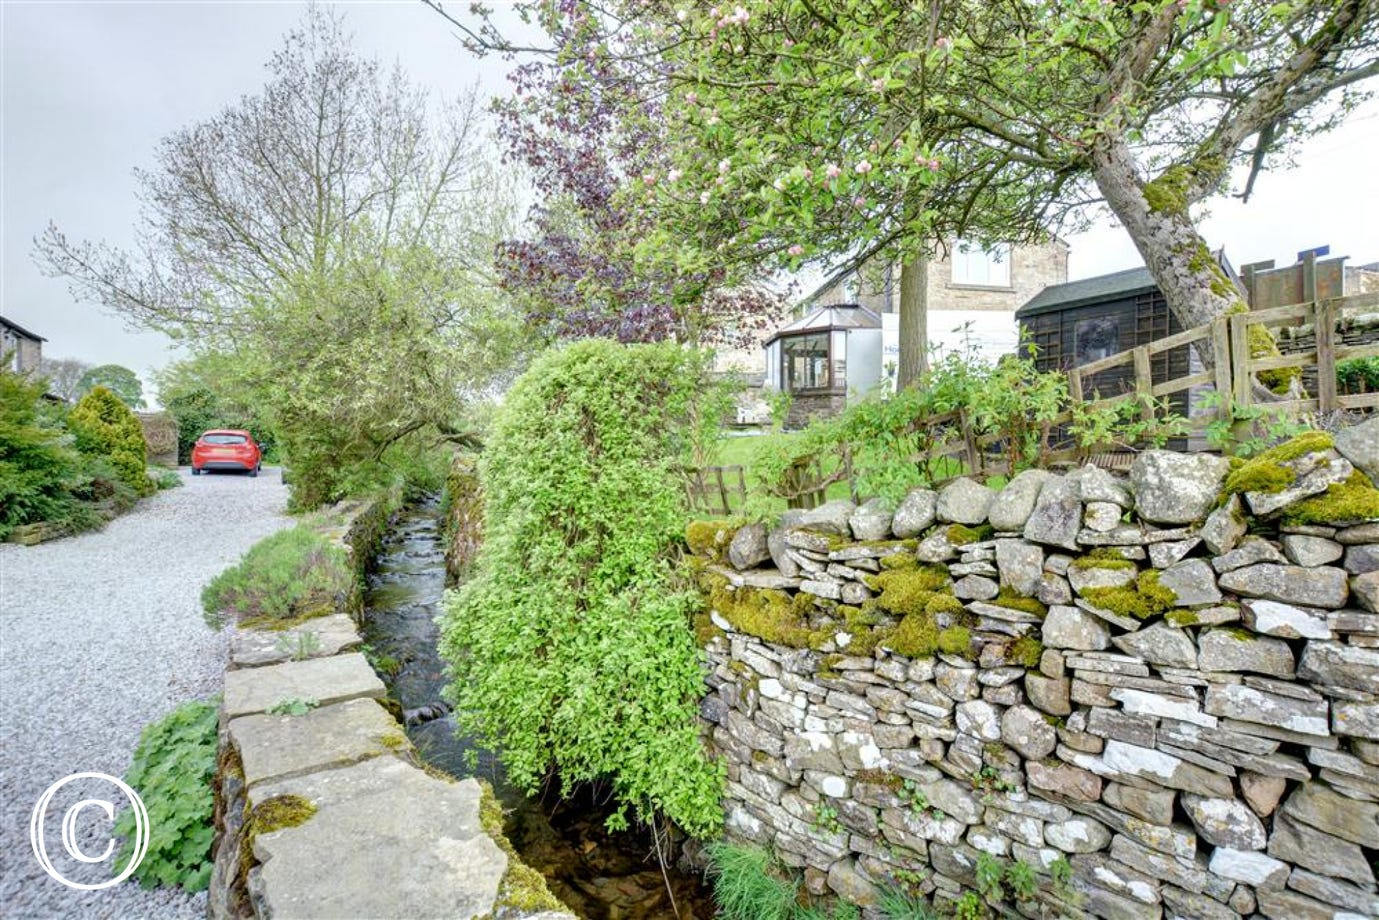 The stream over the stone wall at the bottom of the garden